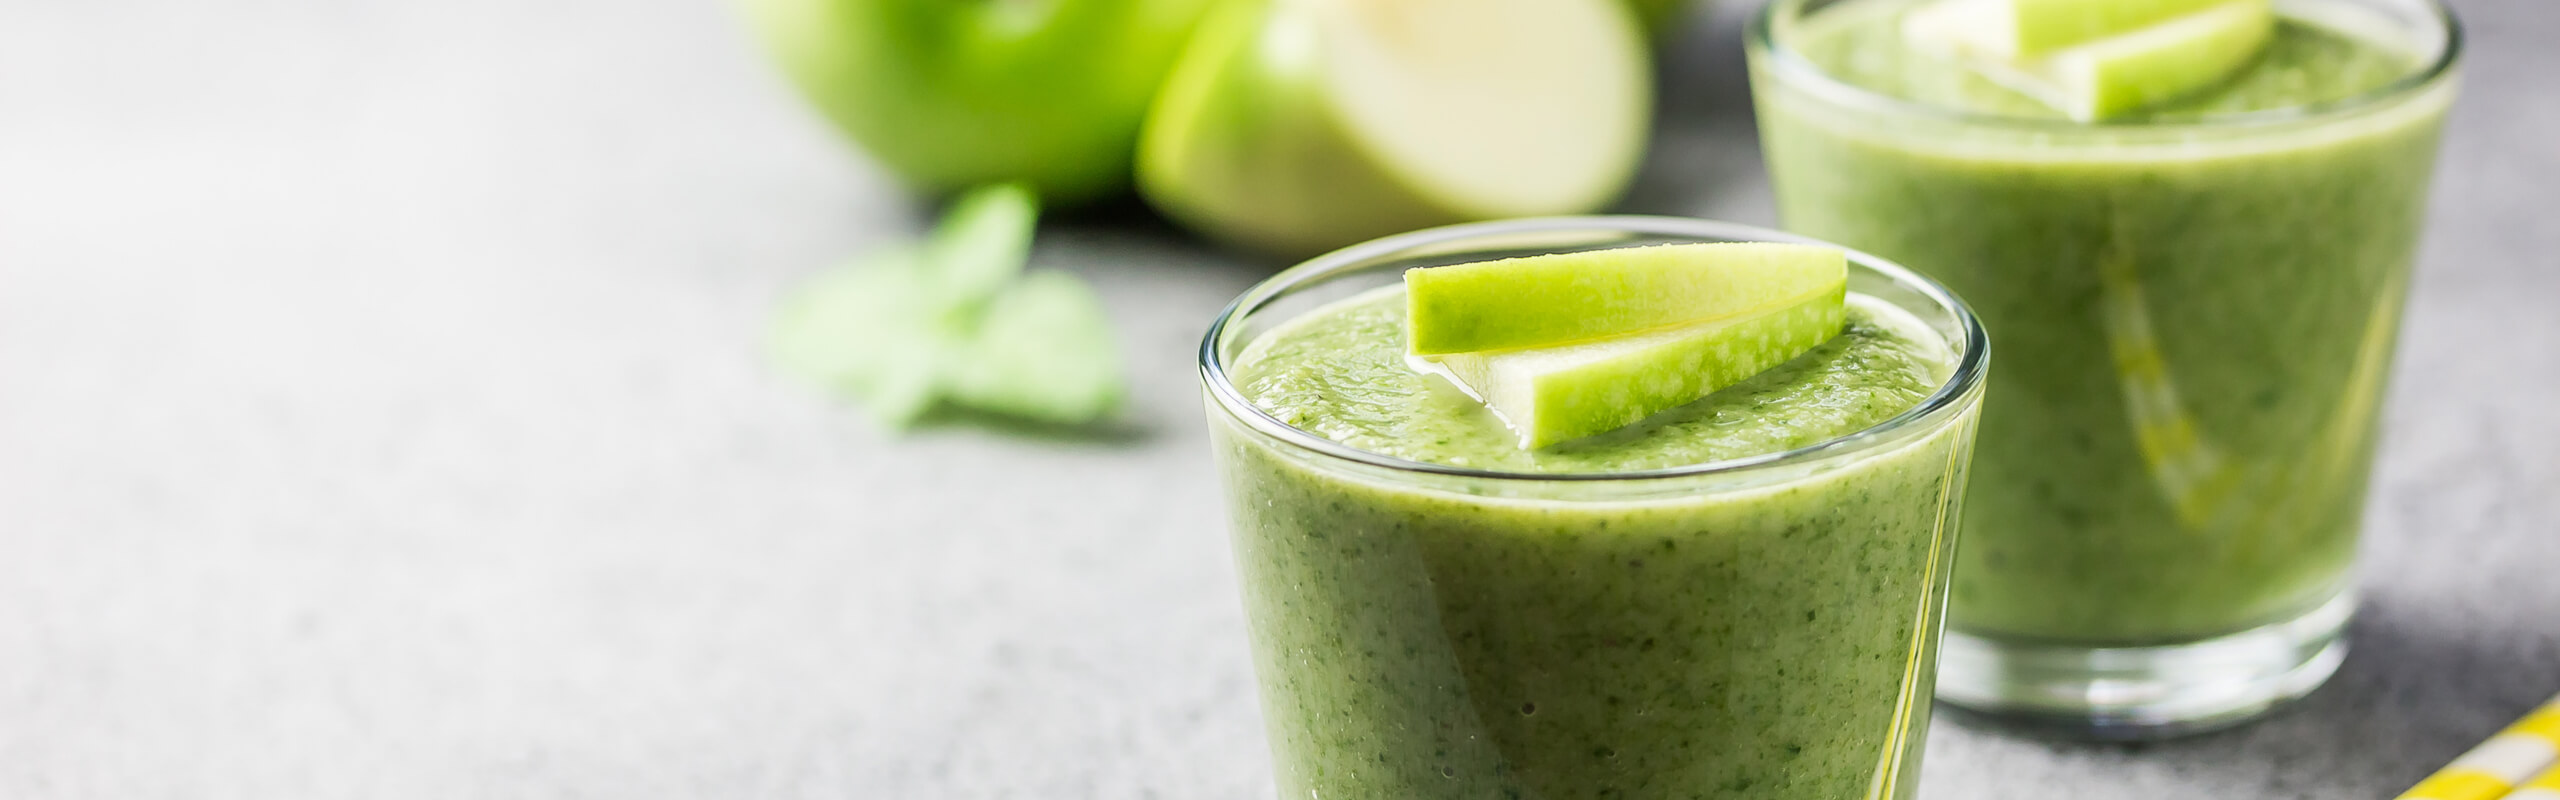 Feature Image: Kale Apple Pineapple Detox